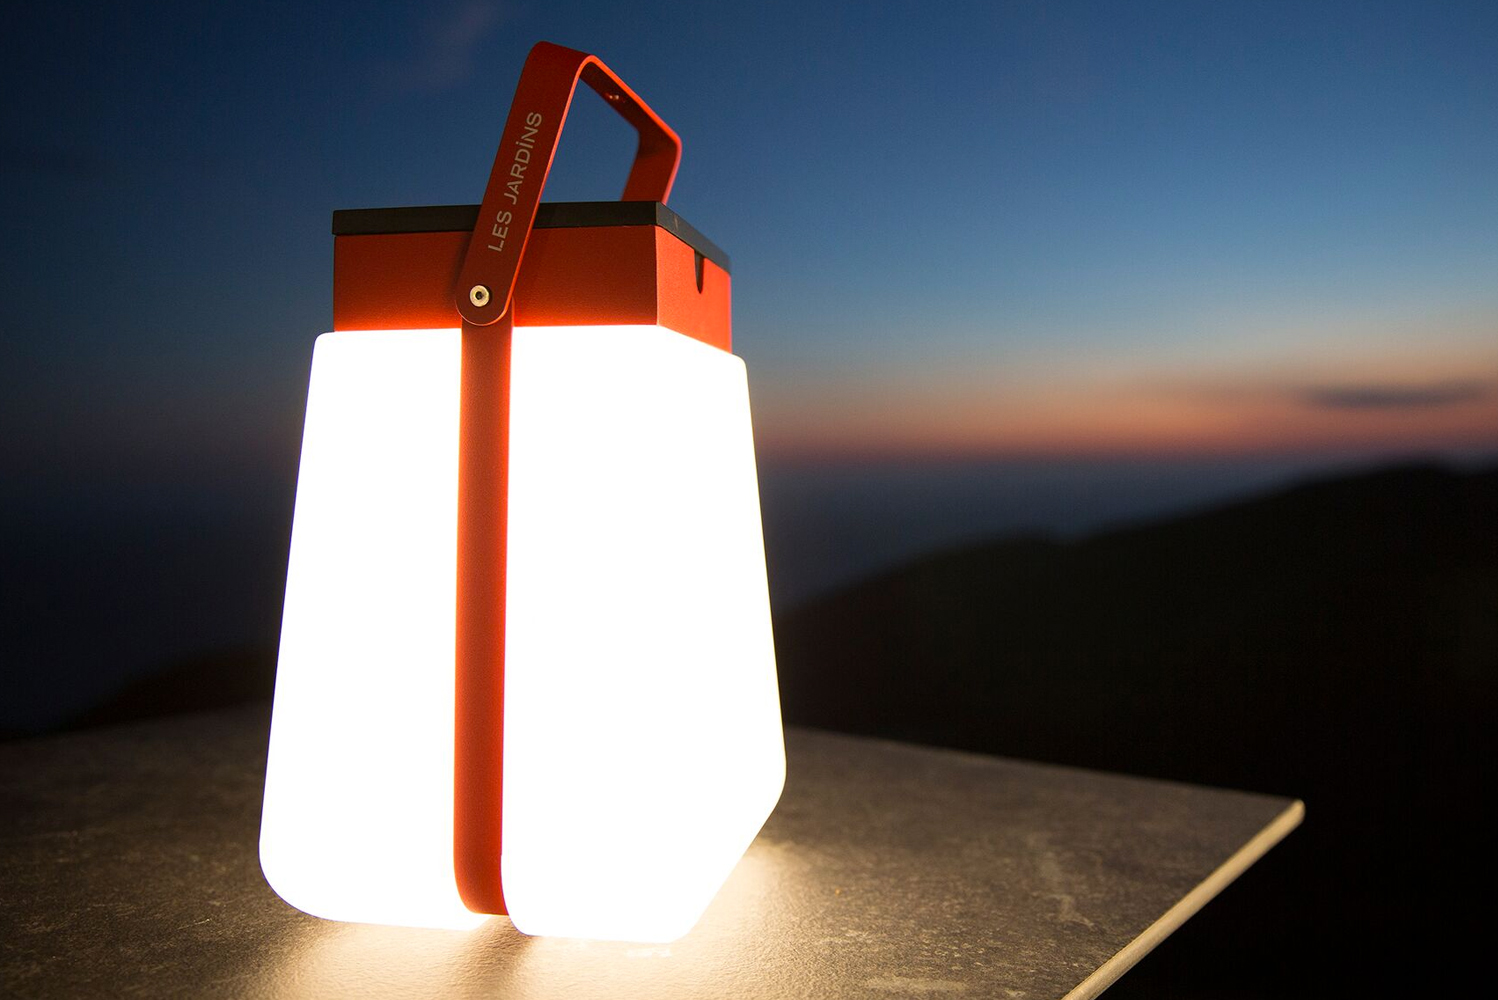 Introducing the Les Jardins solar lighting.